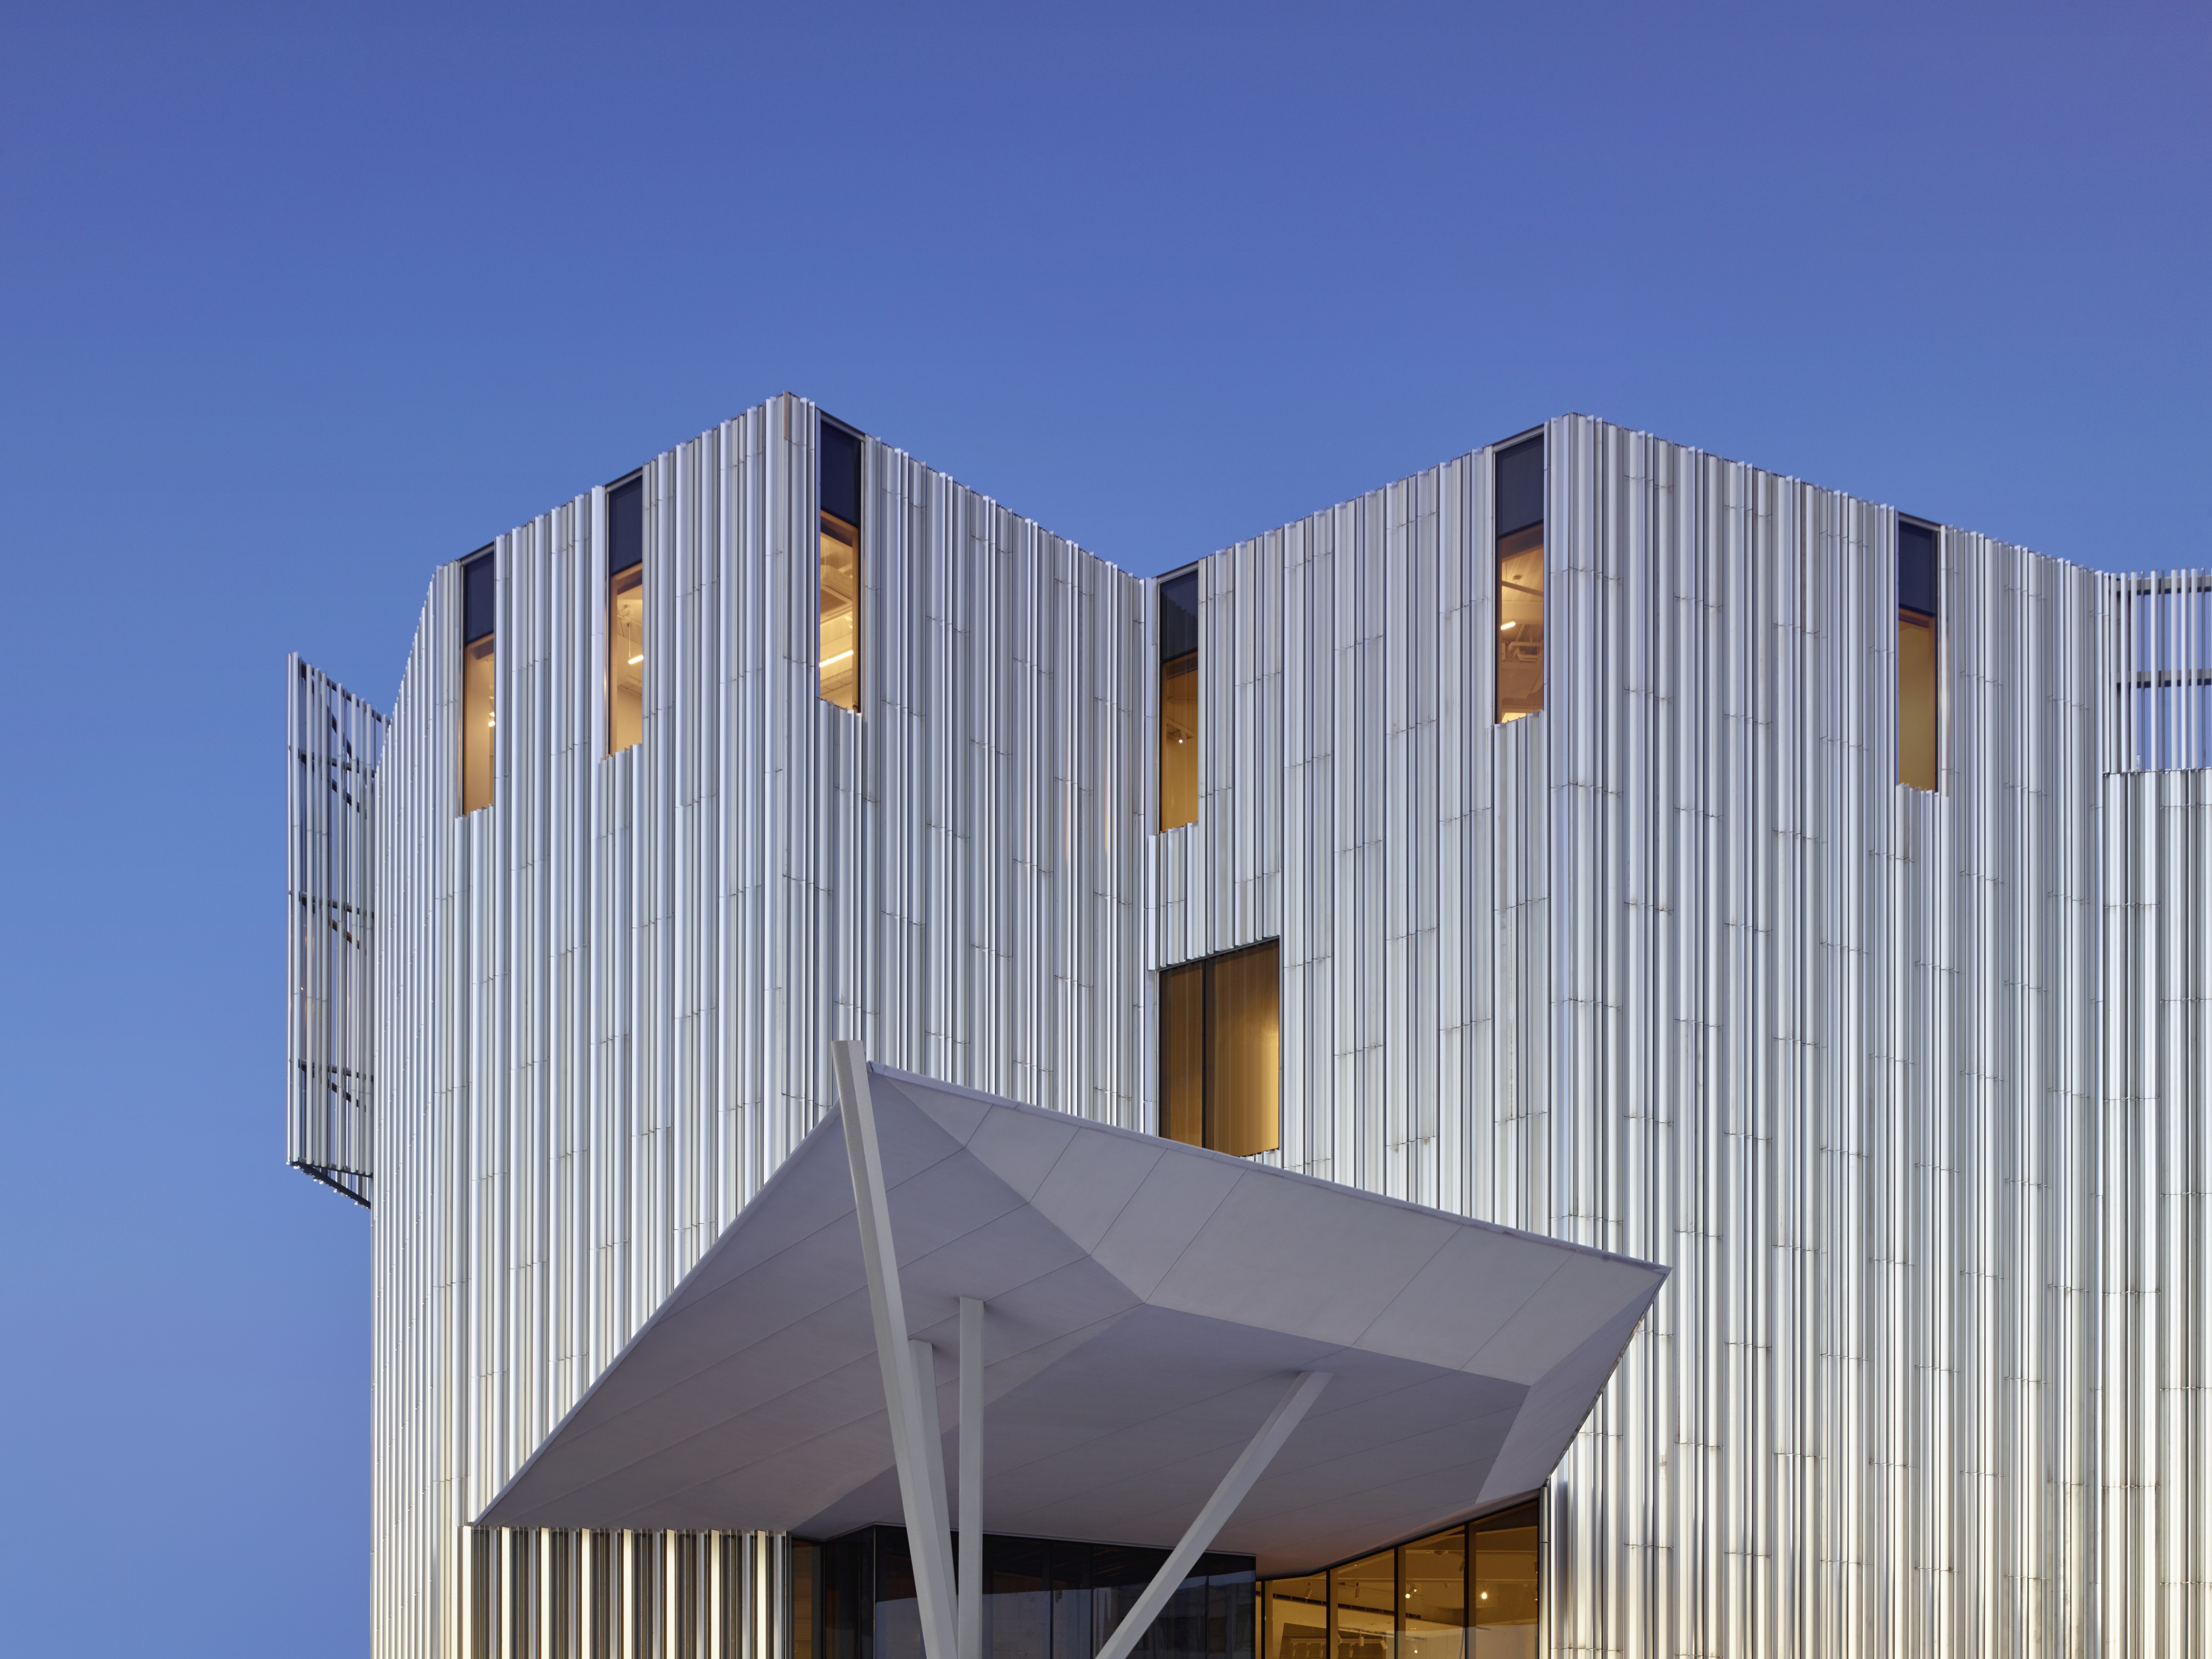 A detail photo of the top portion of a building, featuring sharp angles and covered in aluminum fins, against an early evening sky